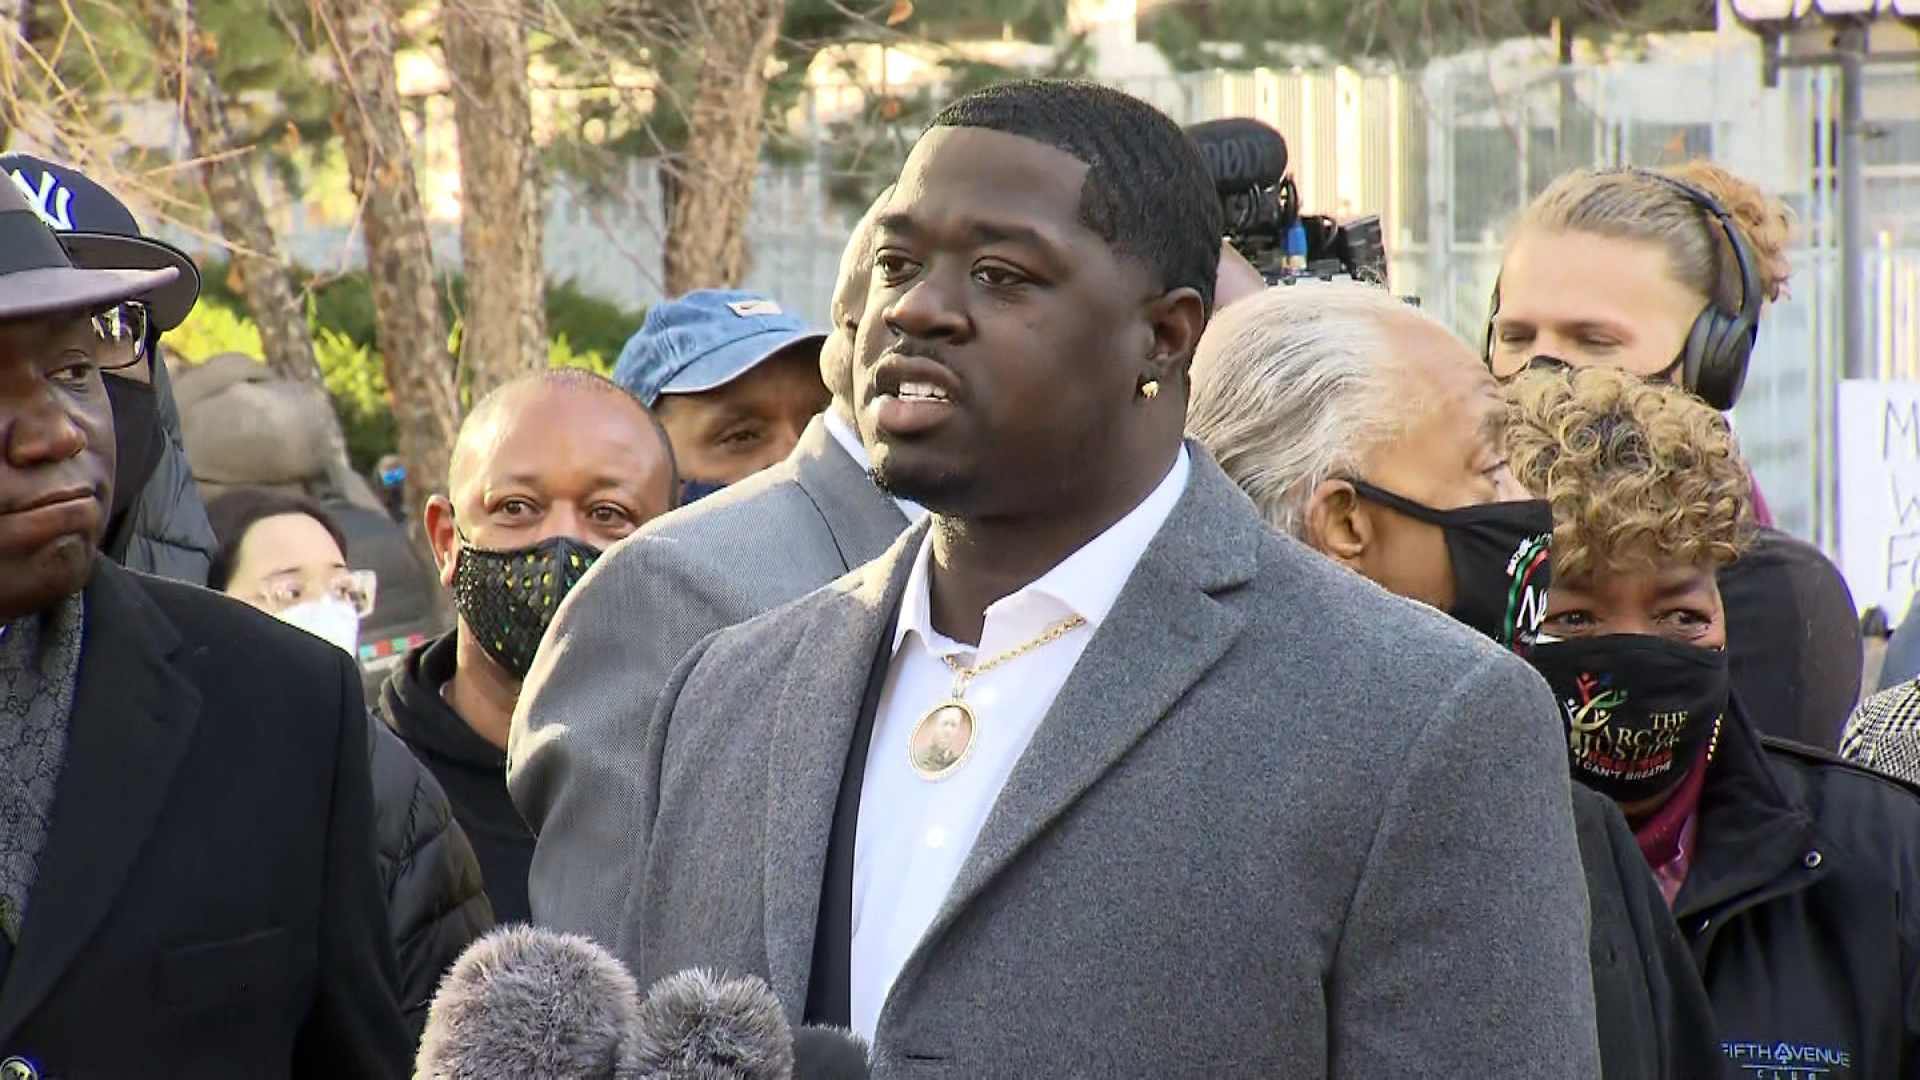 Brandon Williams, nephew of George Floyd, speaks during a press conference in Minneapolis,